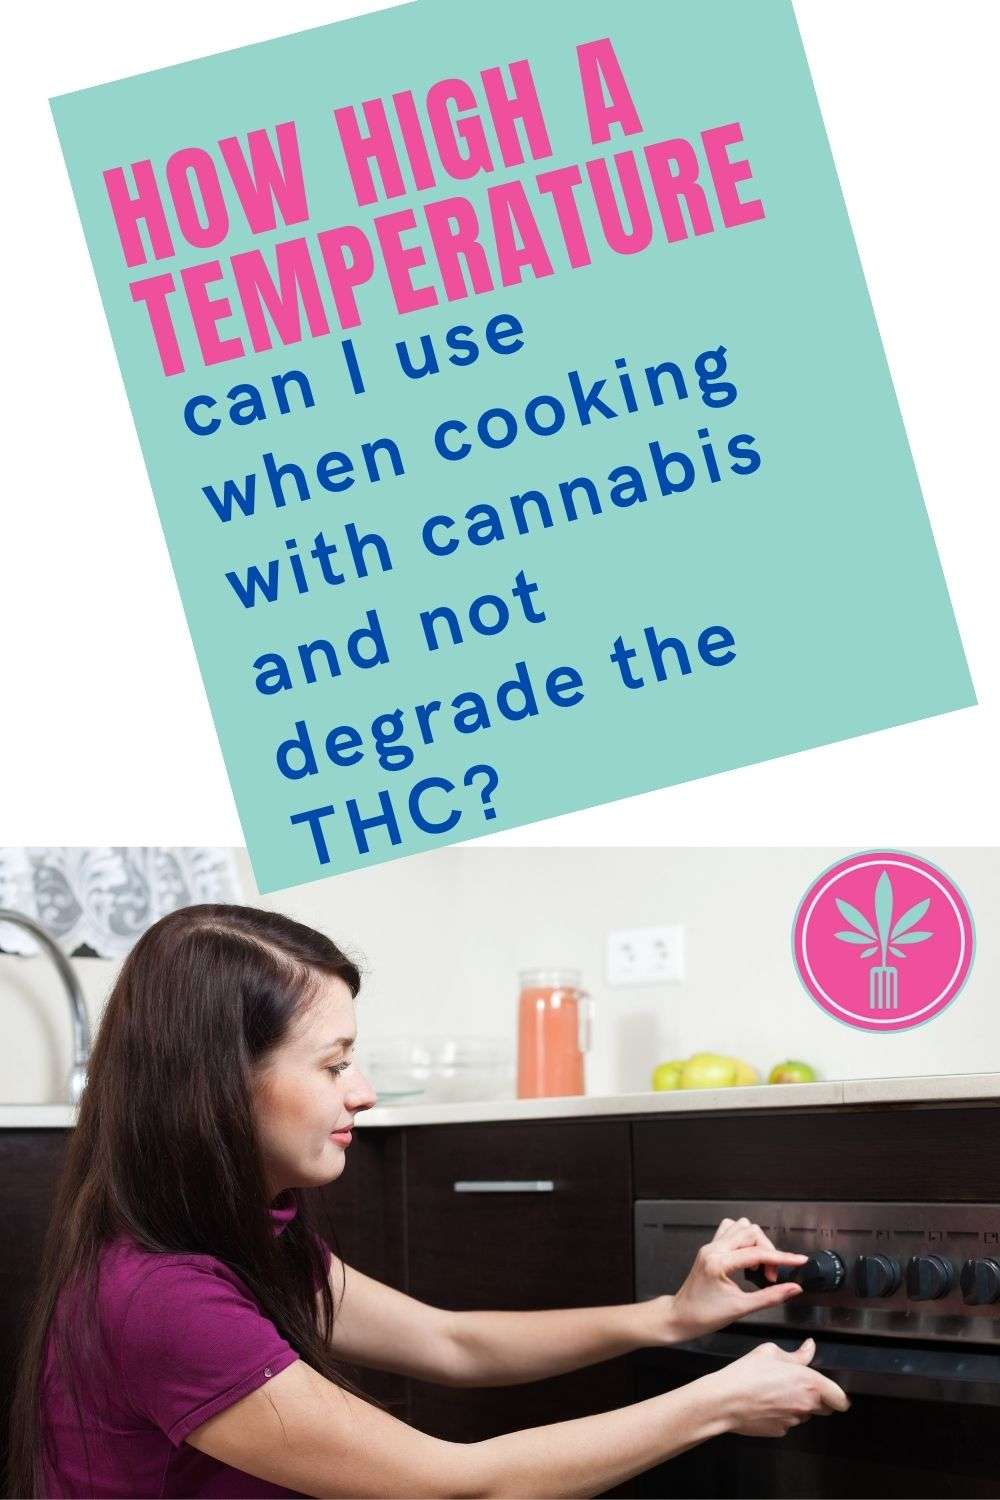 How High a Temperature Can I use When Cooking with Cannabis and Not Degrade the THC?